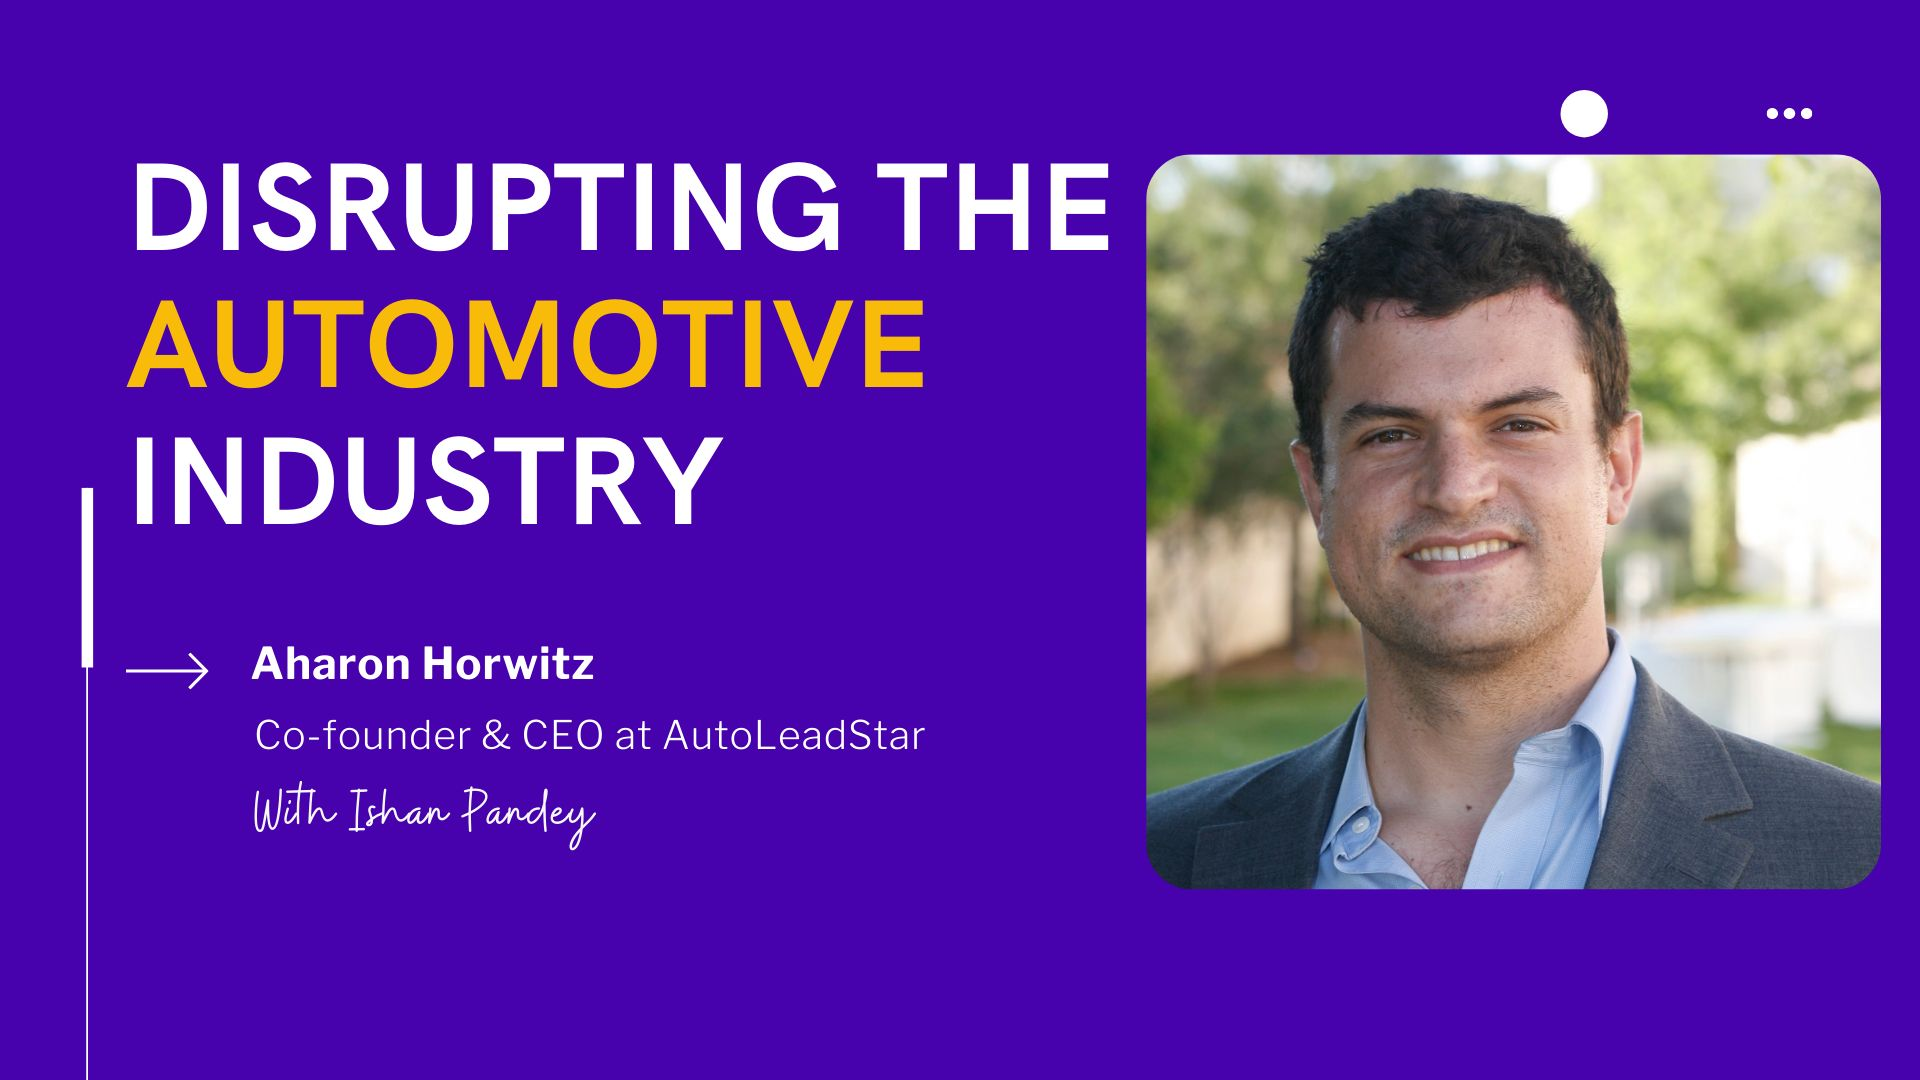 /the-current-state-of-automotive-marketing-with-aharon-horwitz-lv3033j9 feature image